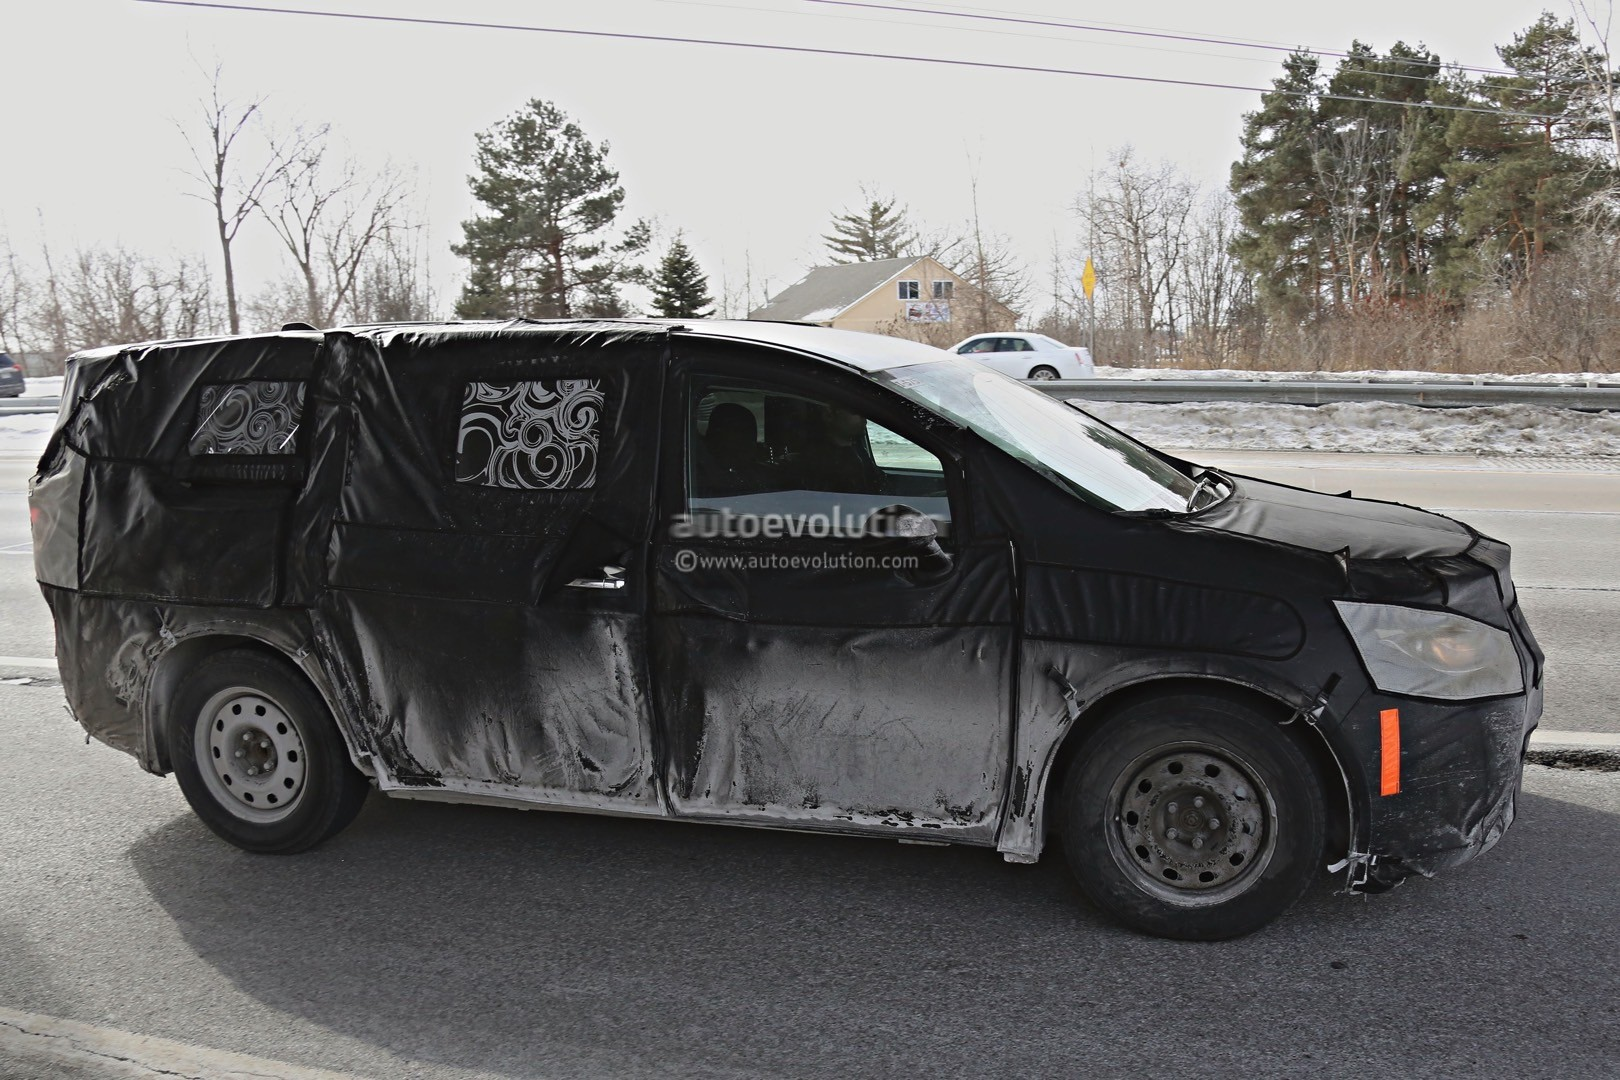 2017 Chrysler Town & Country Spied Inside and Out ...